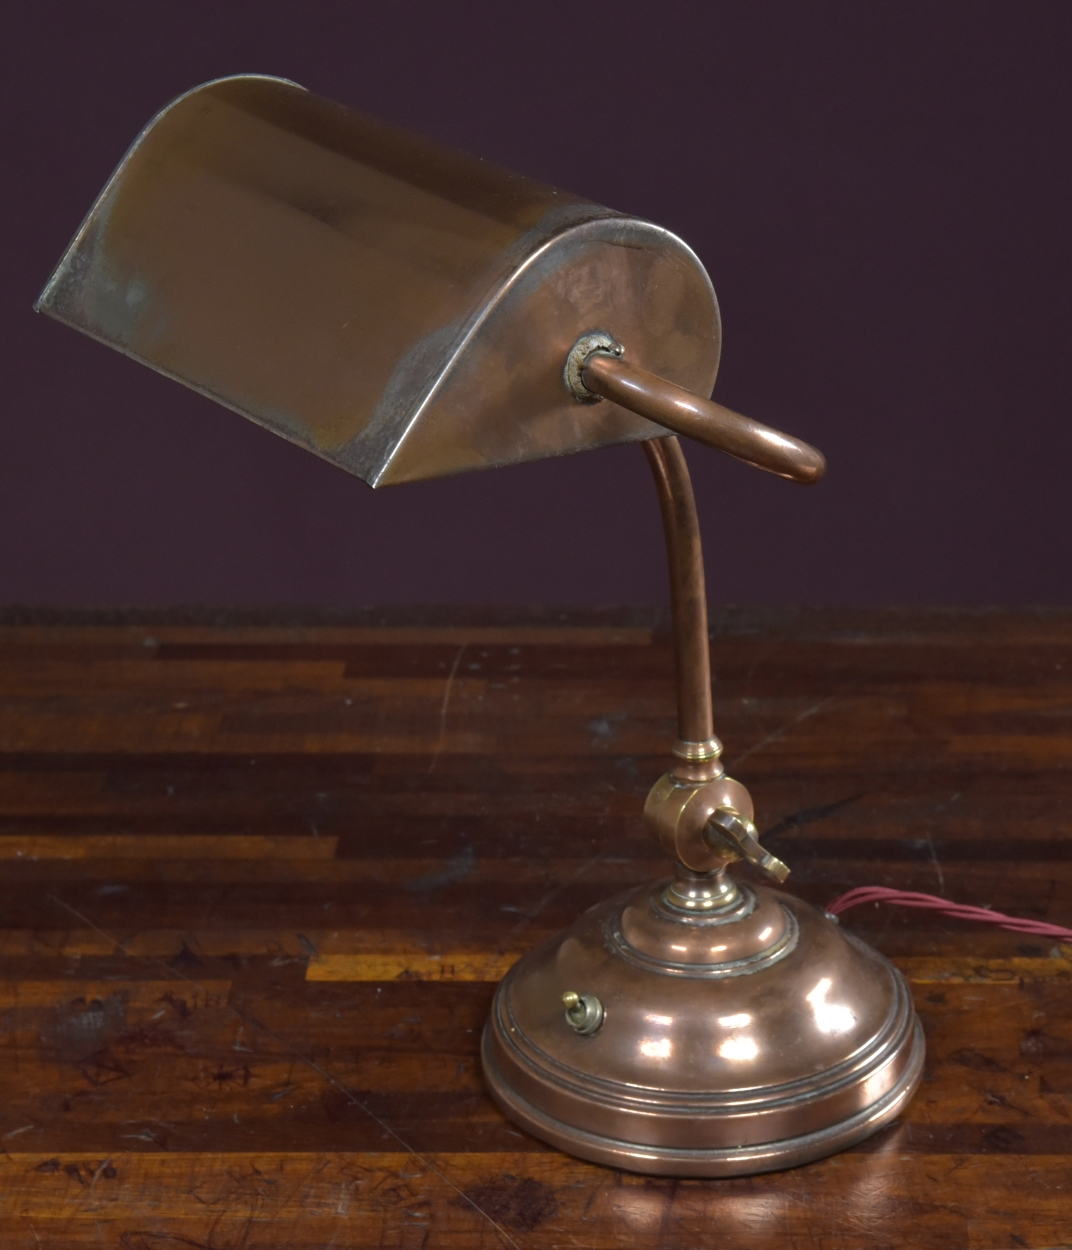 Antique Bankers desk lamp-haes-antiques -DSC_2647CR_main_636327812264475216.jpg - Antique Bankers Desk Lamp - The Hoarde